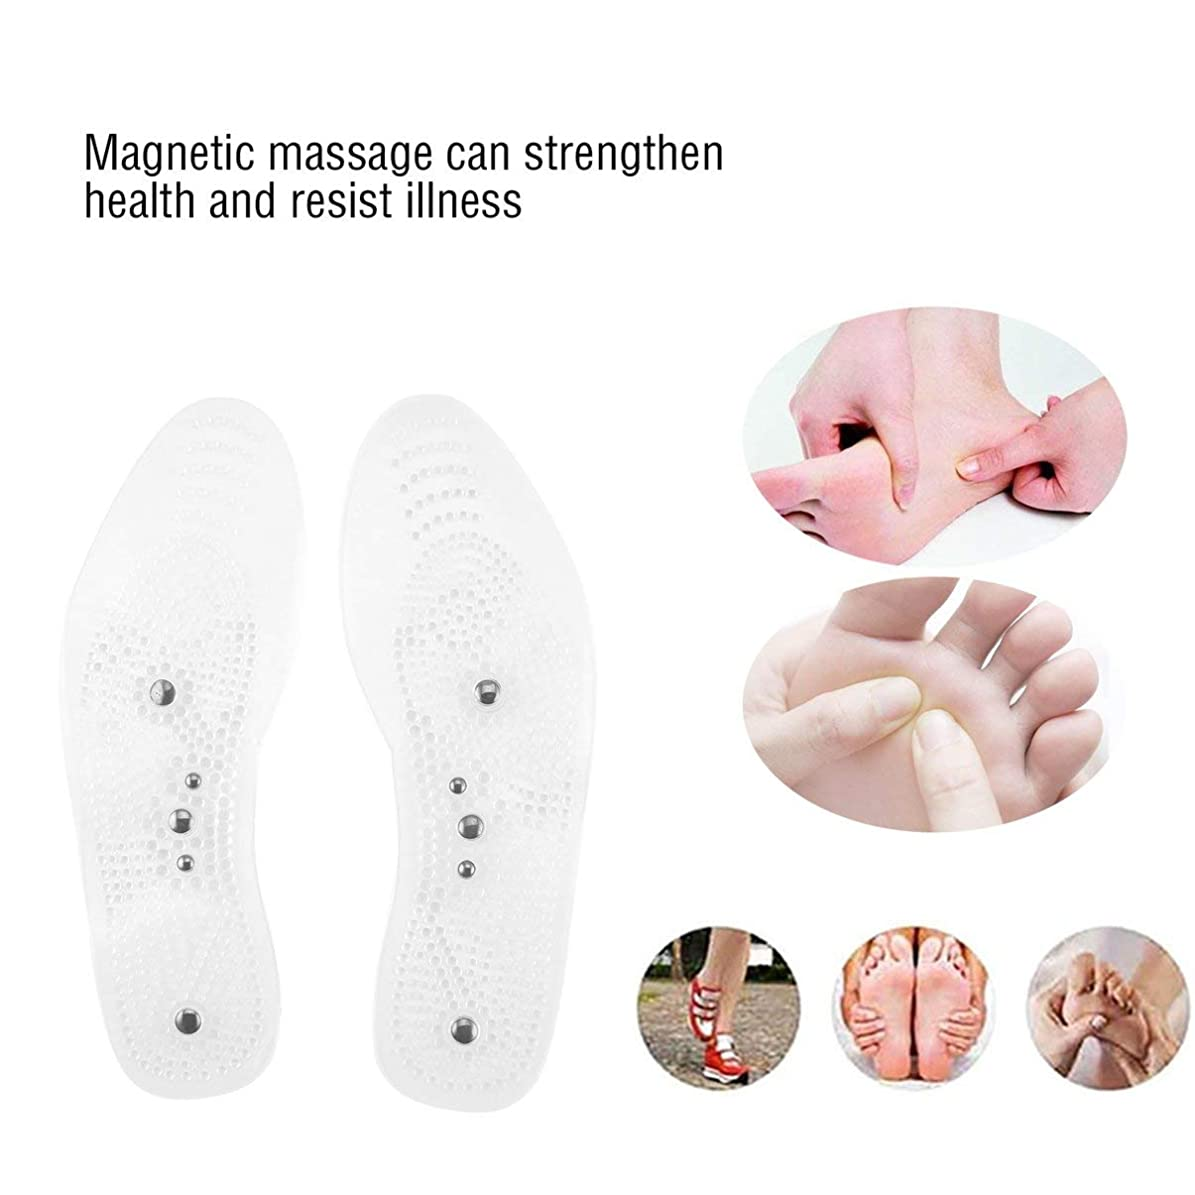 液化するニュージーランド分解するMagnetic Therapy Health Care Foot Massage Insoles Anti-fatigue Magnetic Shoe Pads Silicone Foot Massager for Men Women